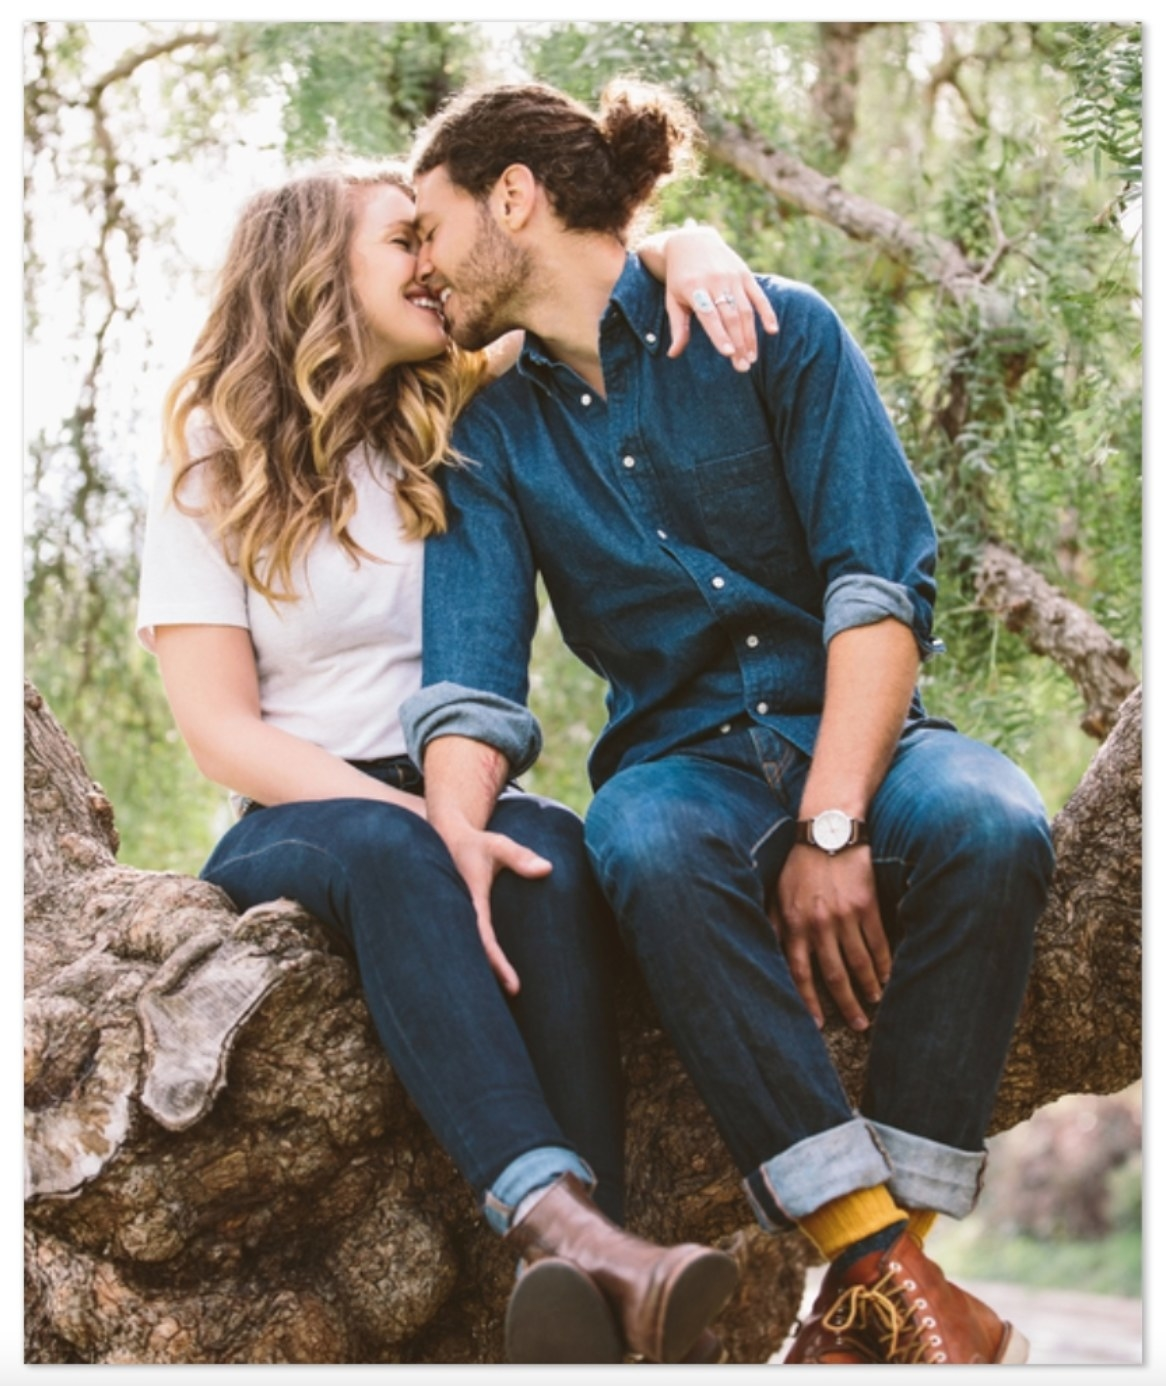 a photo of a couple for the sherpa fleece blanket